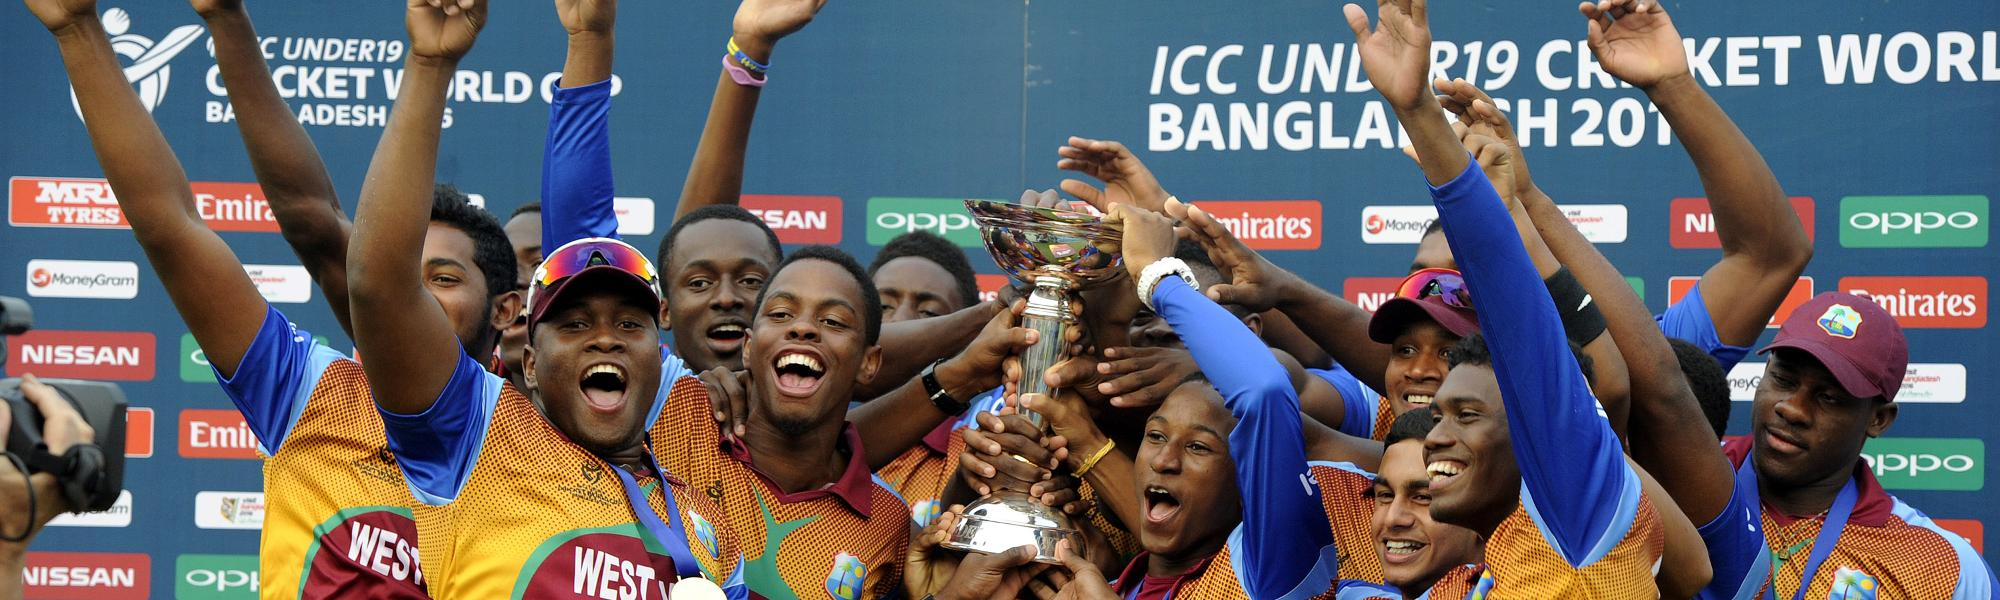 West Indies, the defending champions, will be tested against former champions South Africa and the home side, New Zealand.